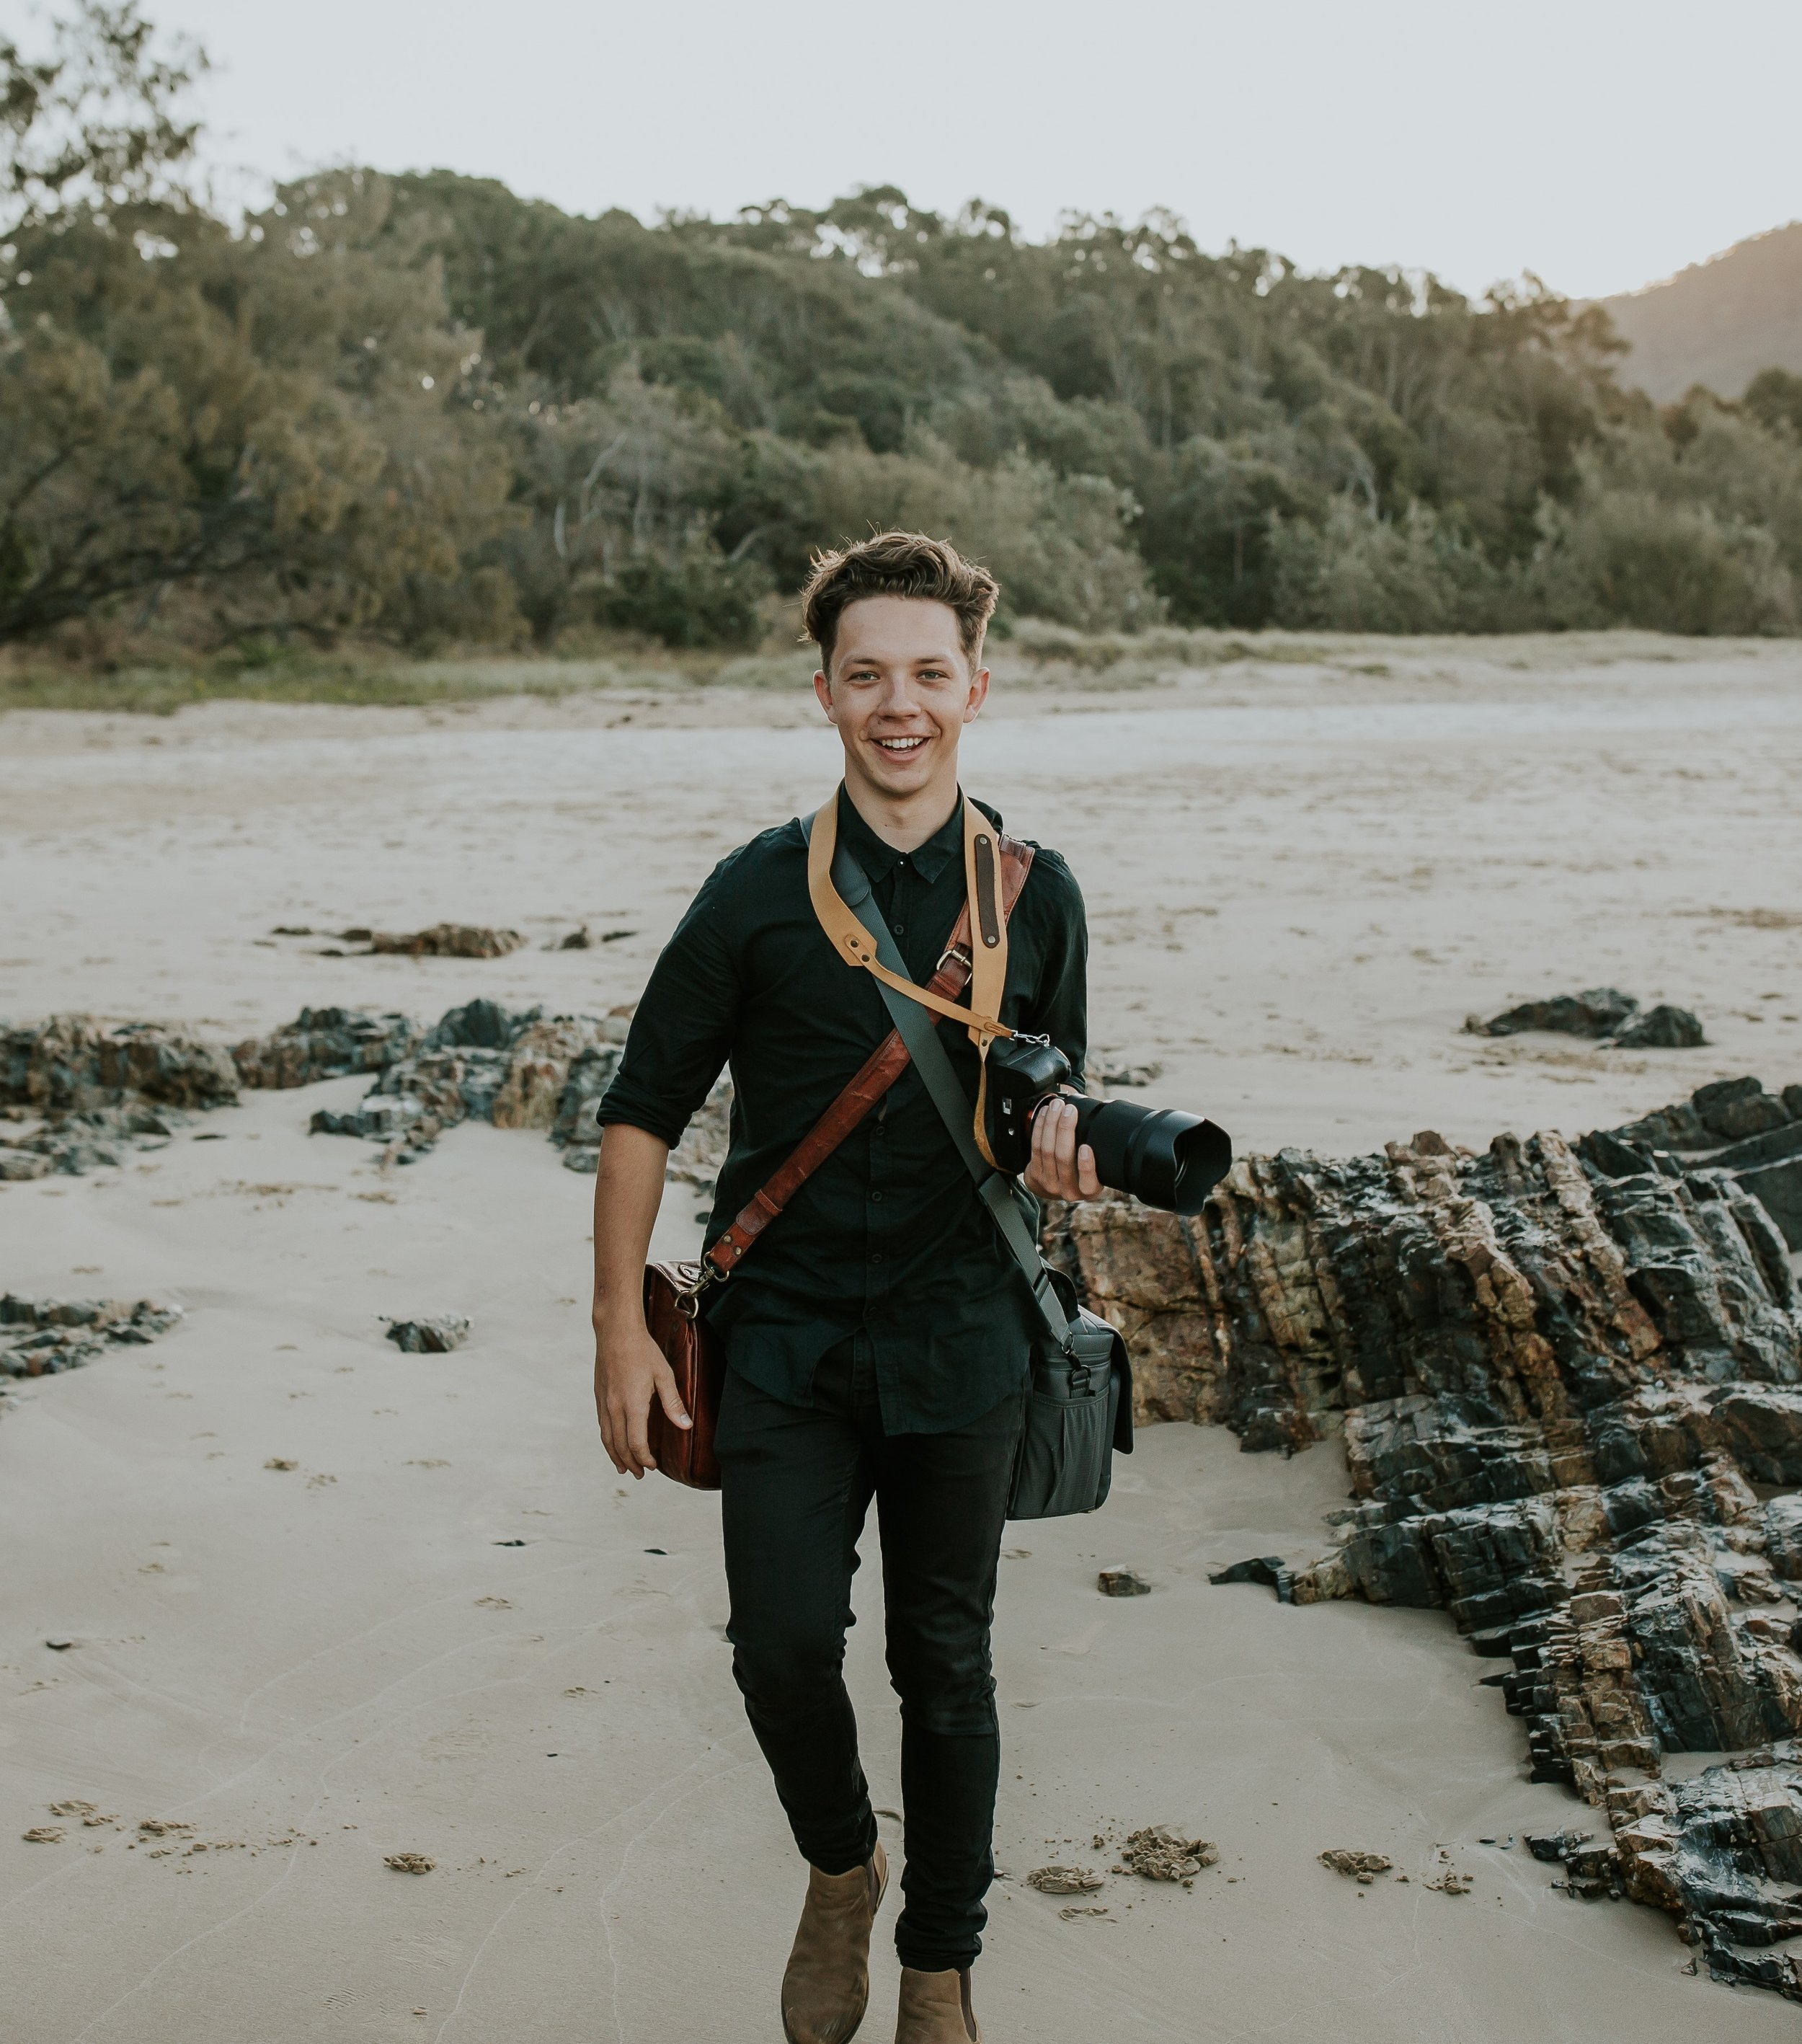 About me! - I'm Lachlan - born and raised in Coffs Harbour, Australia.If you haven't been able to tell already, I have a thing for film-making. I also know how to take a photo or two.